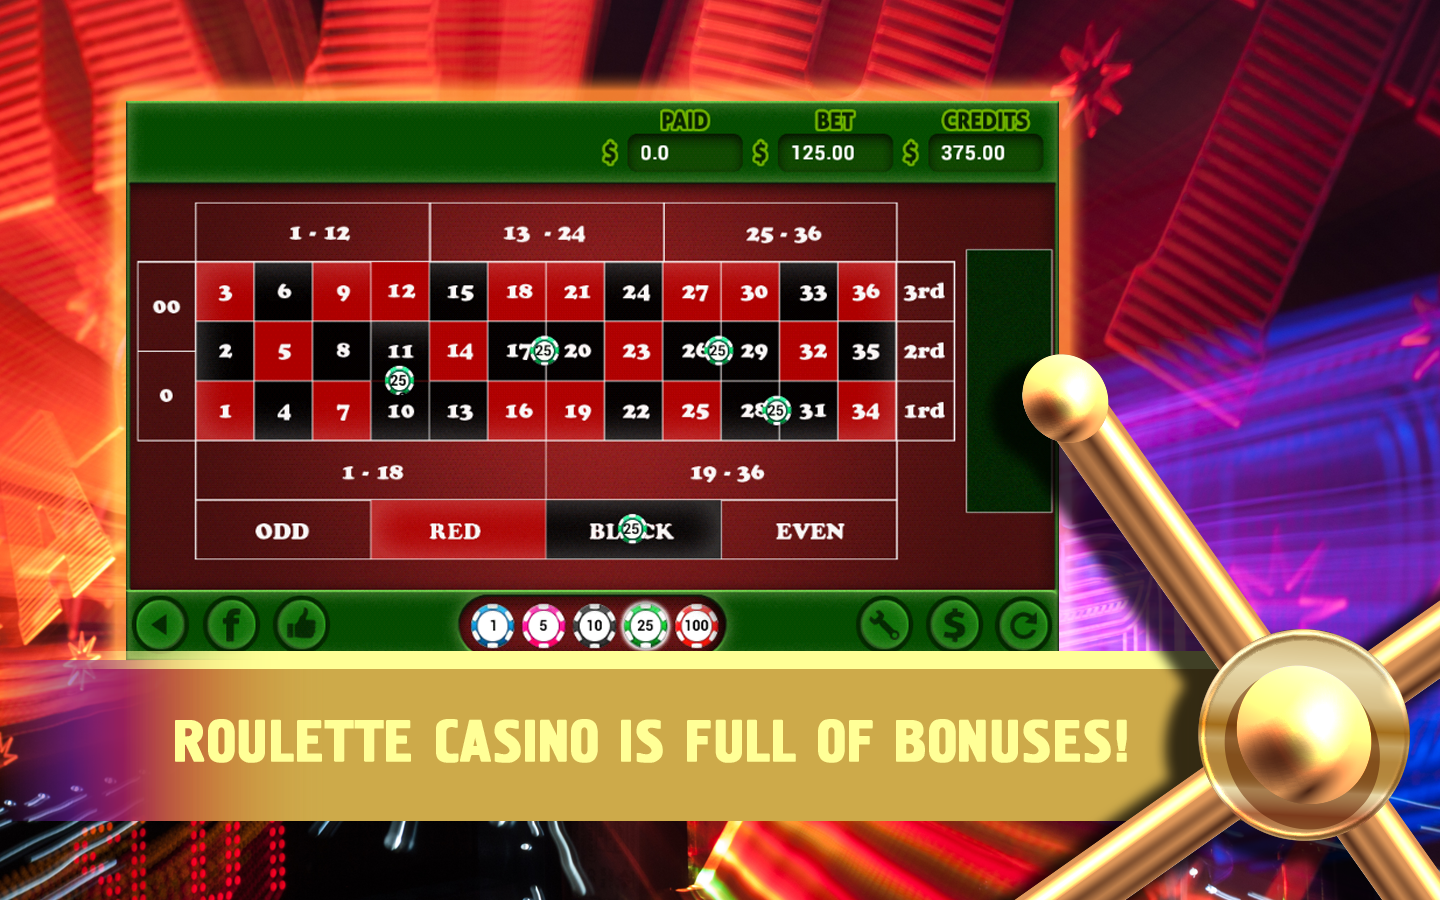 star casino online play roulette now